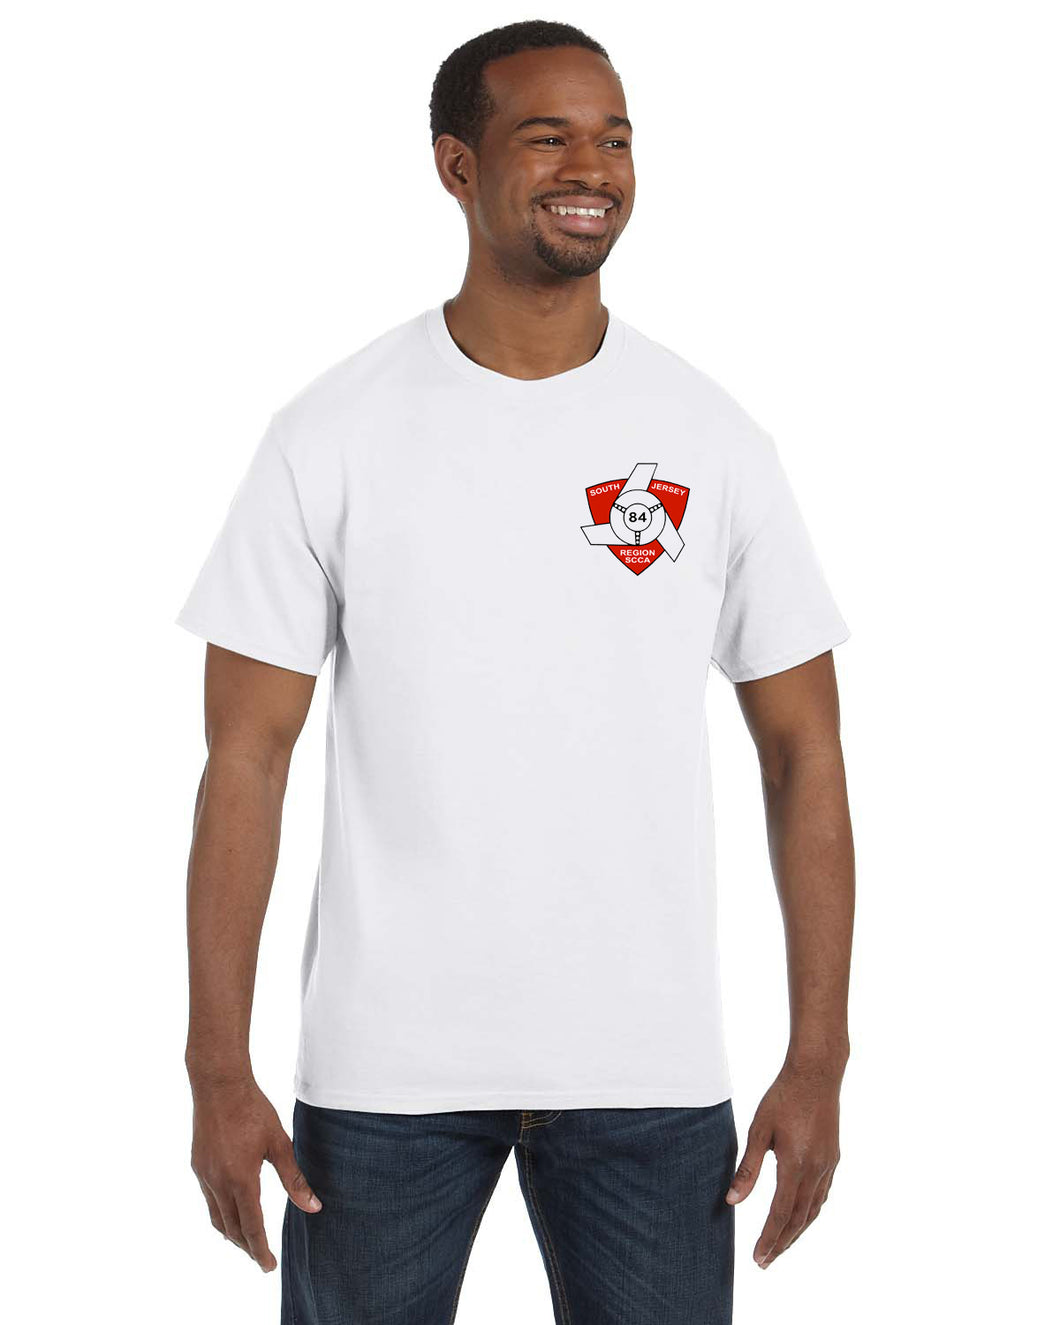 Short sleeve White T-shirt with Back graphic